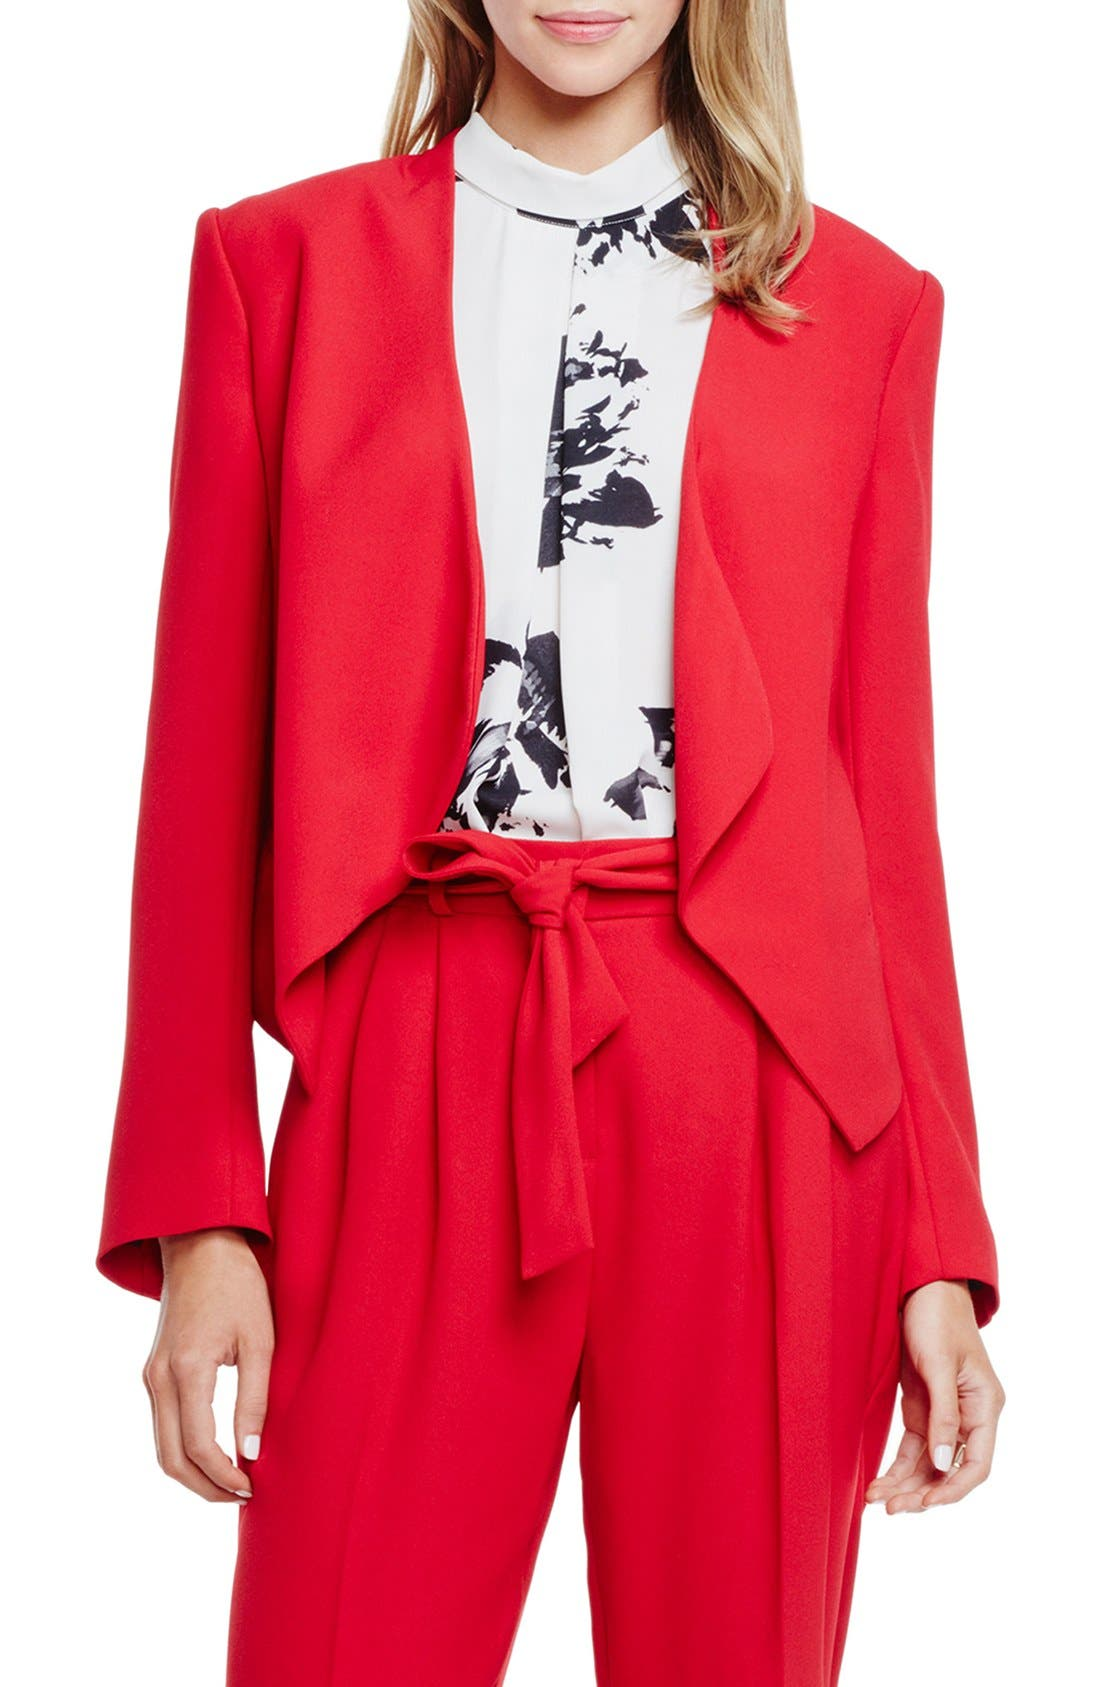 Alternate Image 1 Selected - Vince Camuto Drape Front Blazer (Regular & Petite)